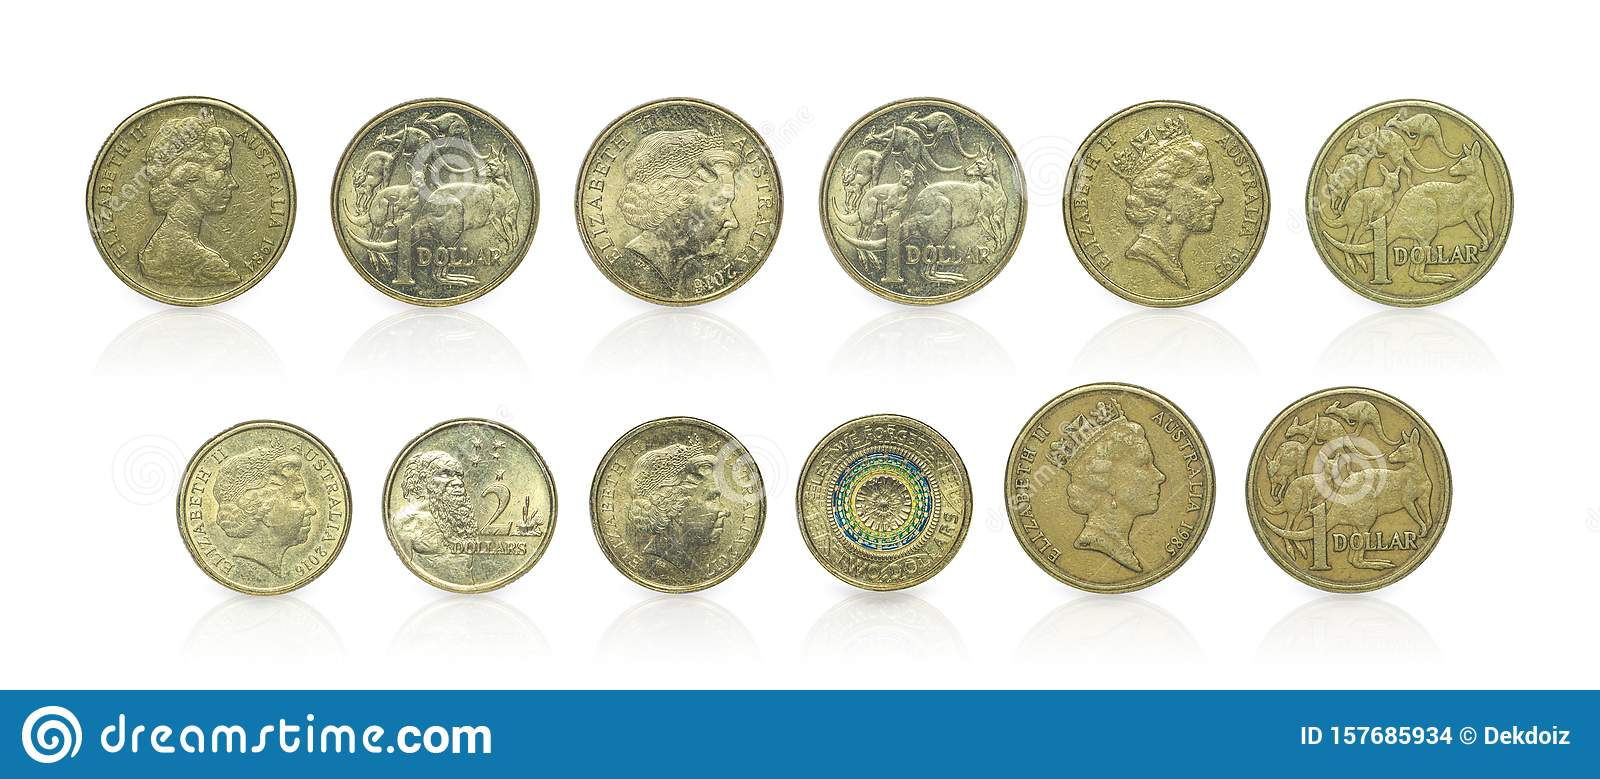 Close up - Set of Australian dollar coins islated on white background with clipping path. Reflection coin on white background. I